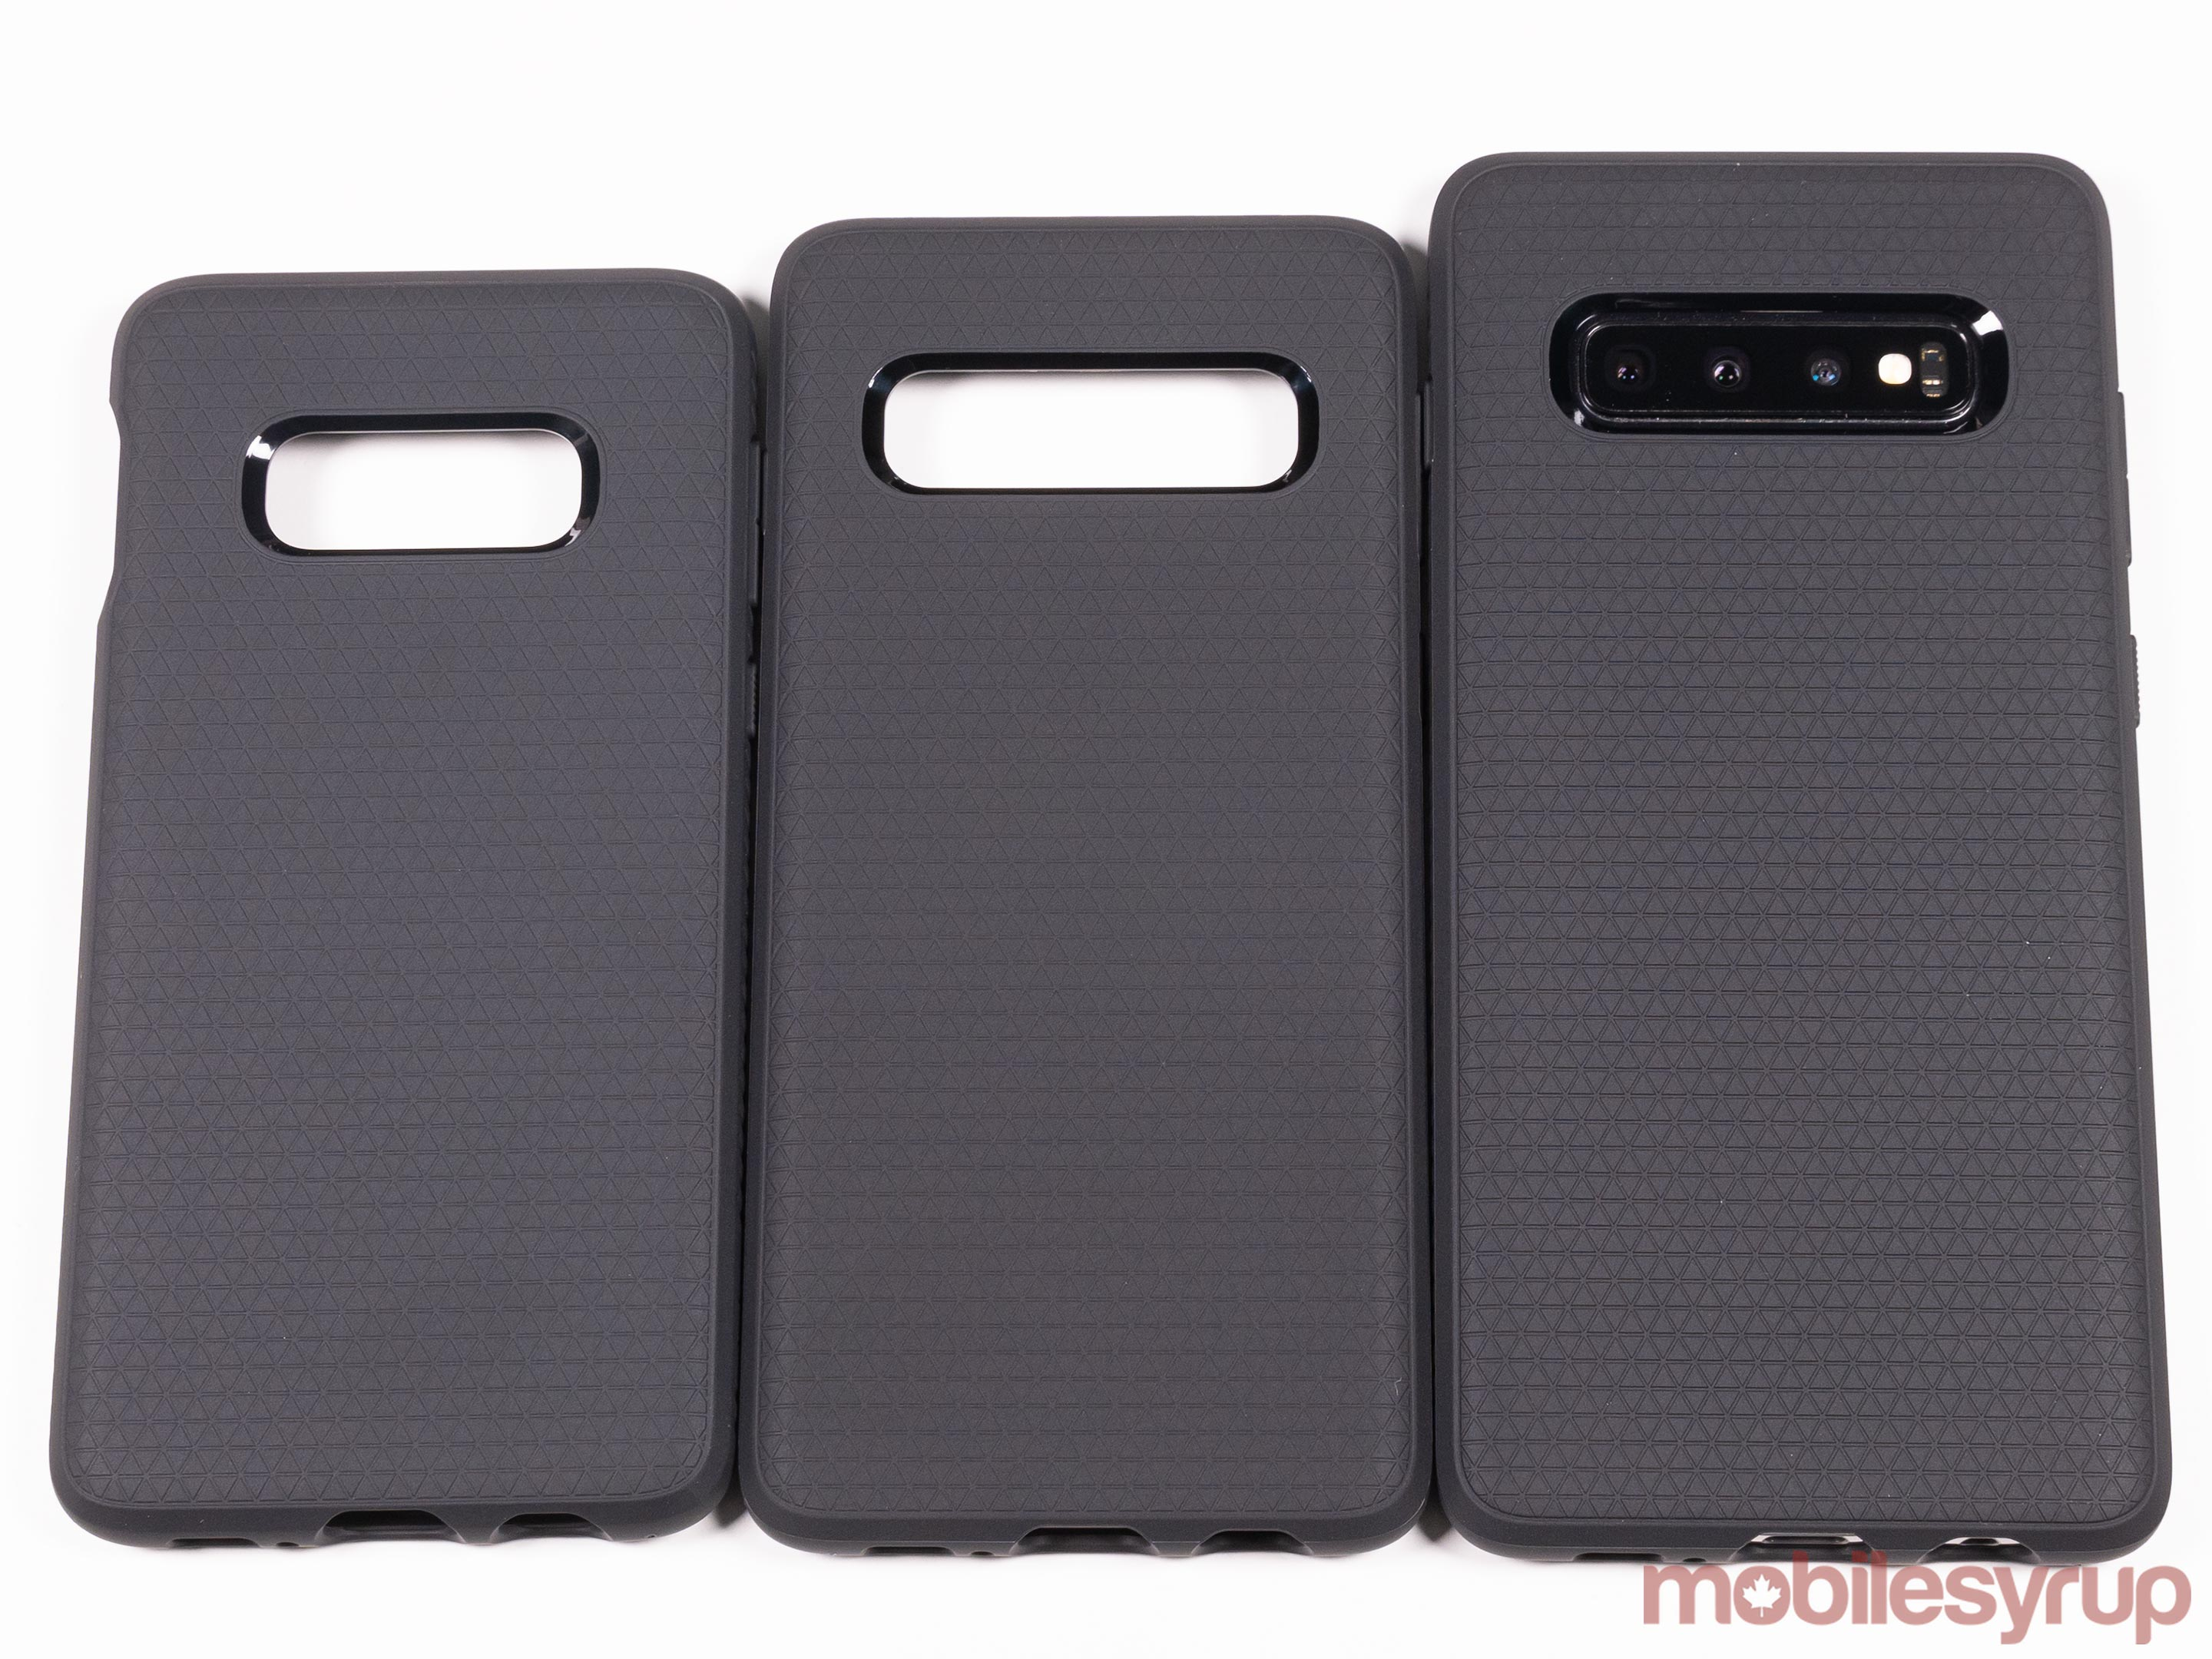 Spigen Liquid Air S10 case